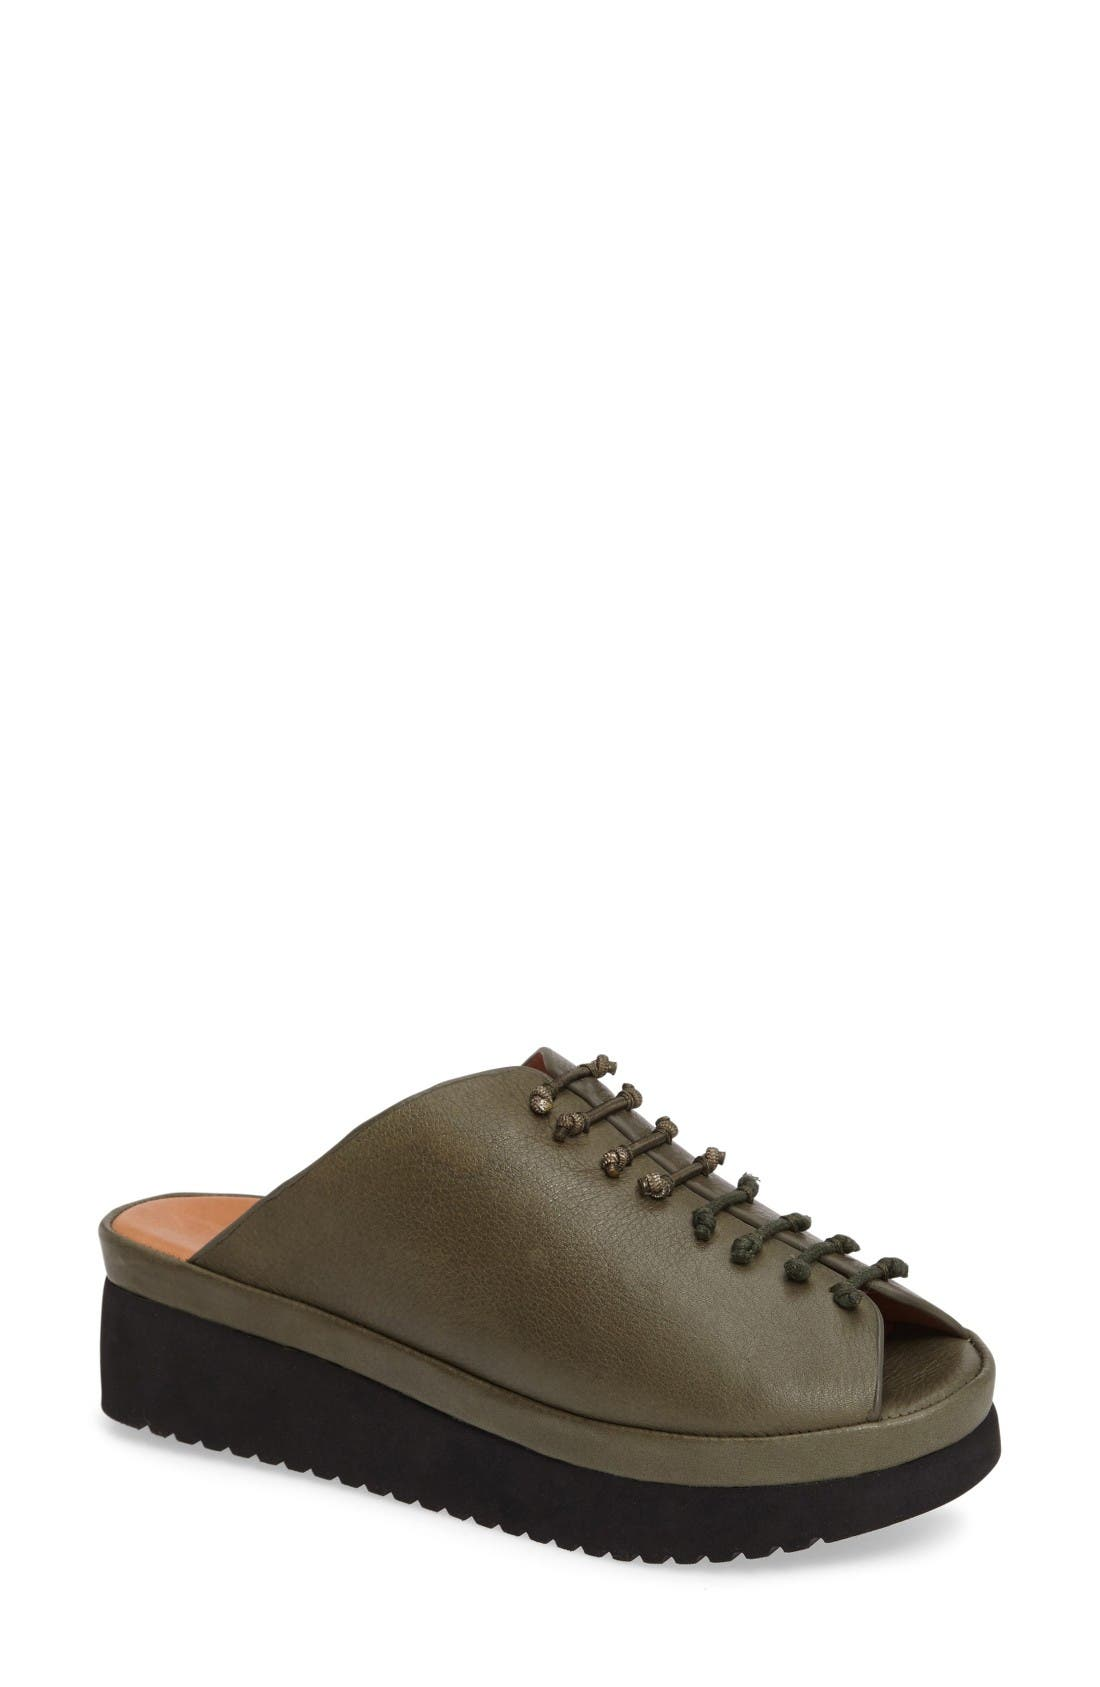 Arienne Wedge Platform Sandal,                         Main,                         color, Olive Leather